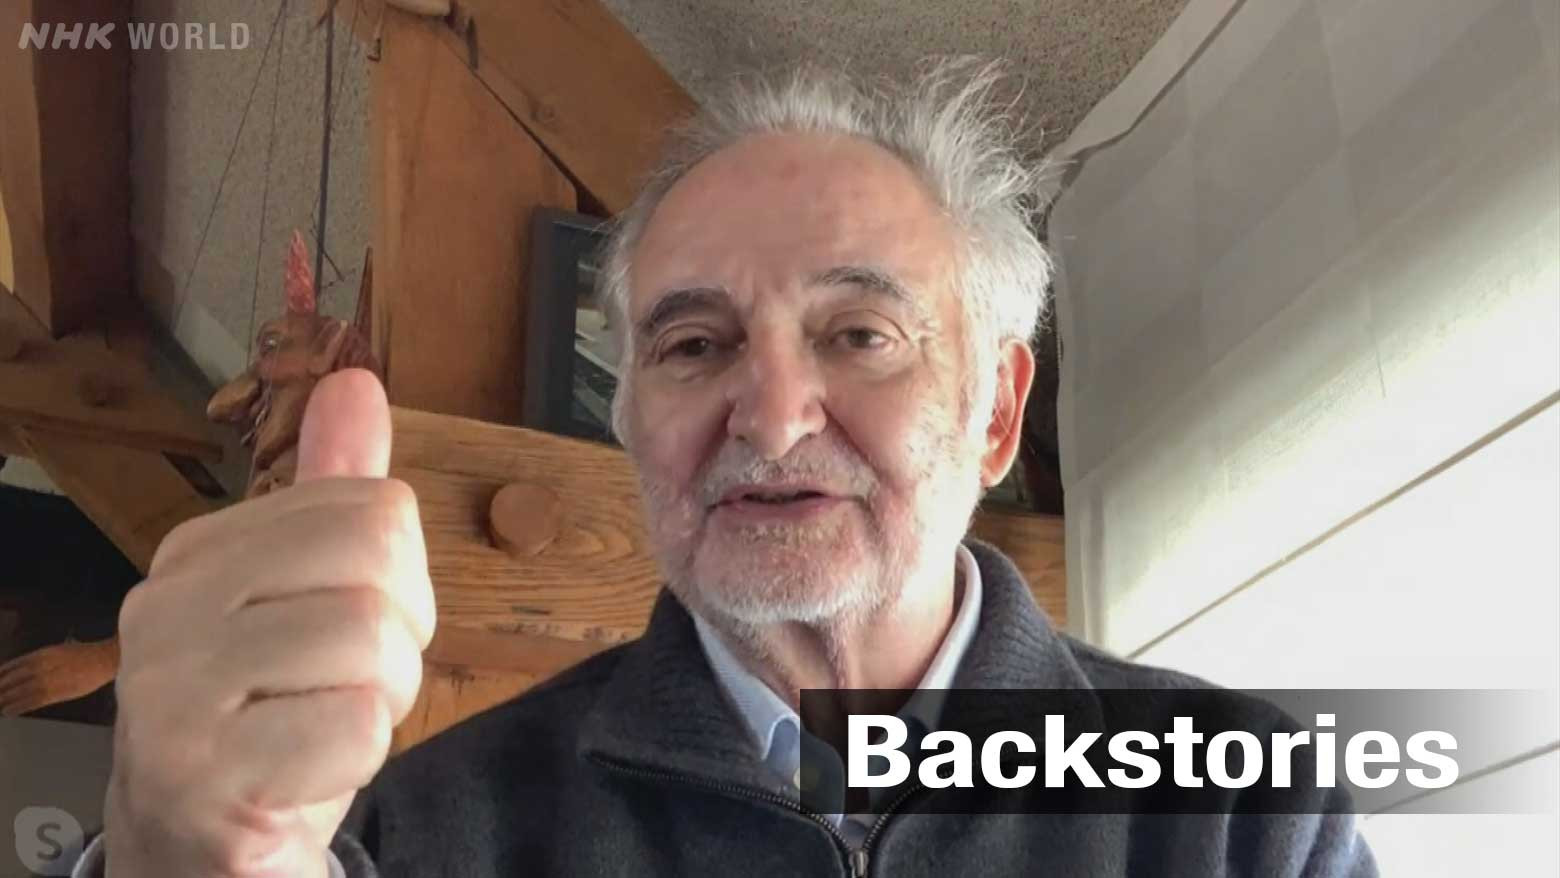 """Positivism needed to overcome coronavirus"": an interview with Jacques Attali"